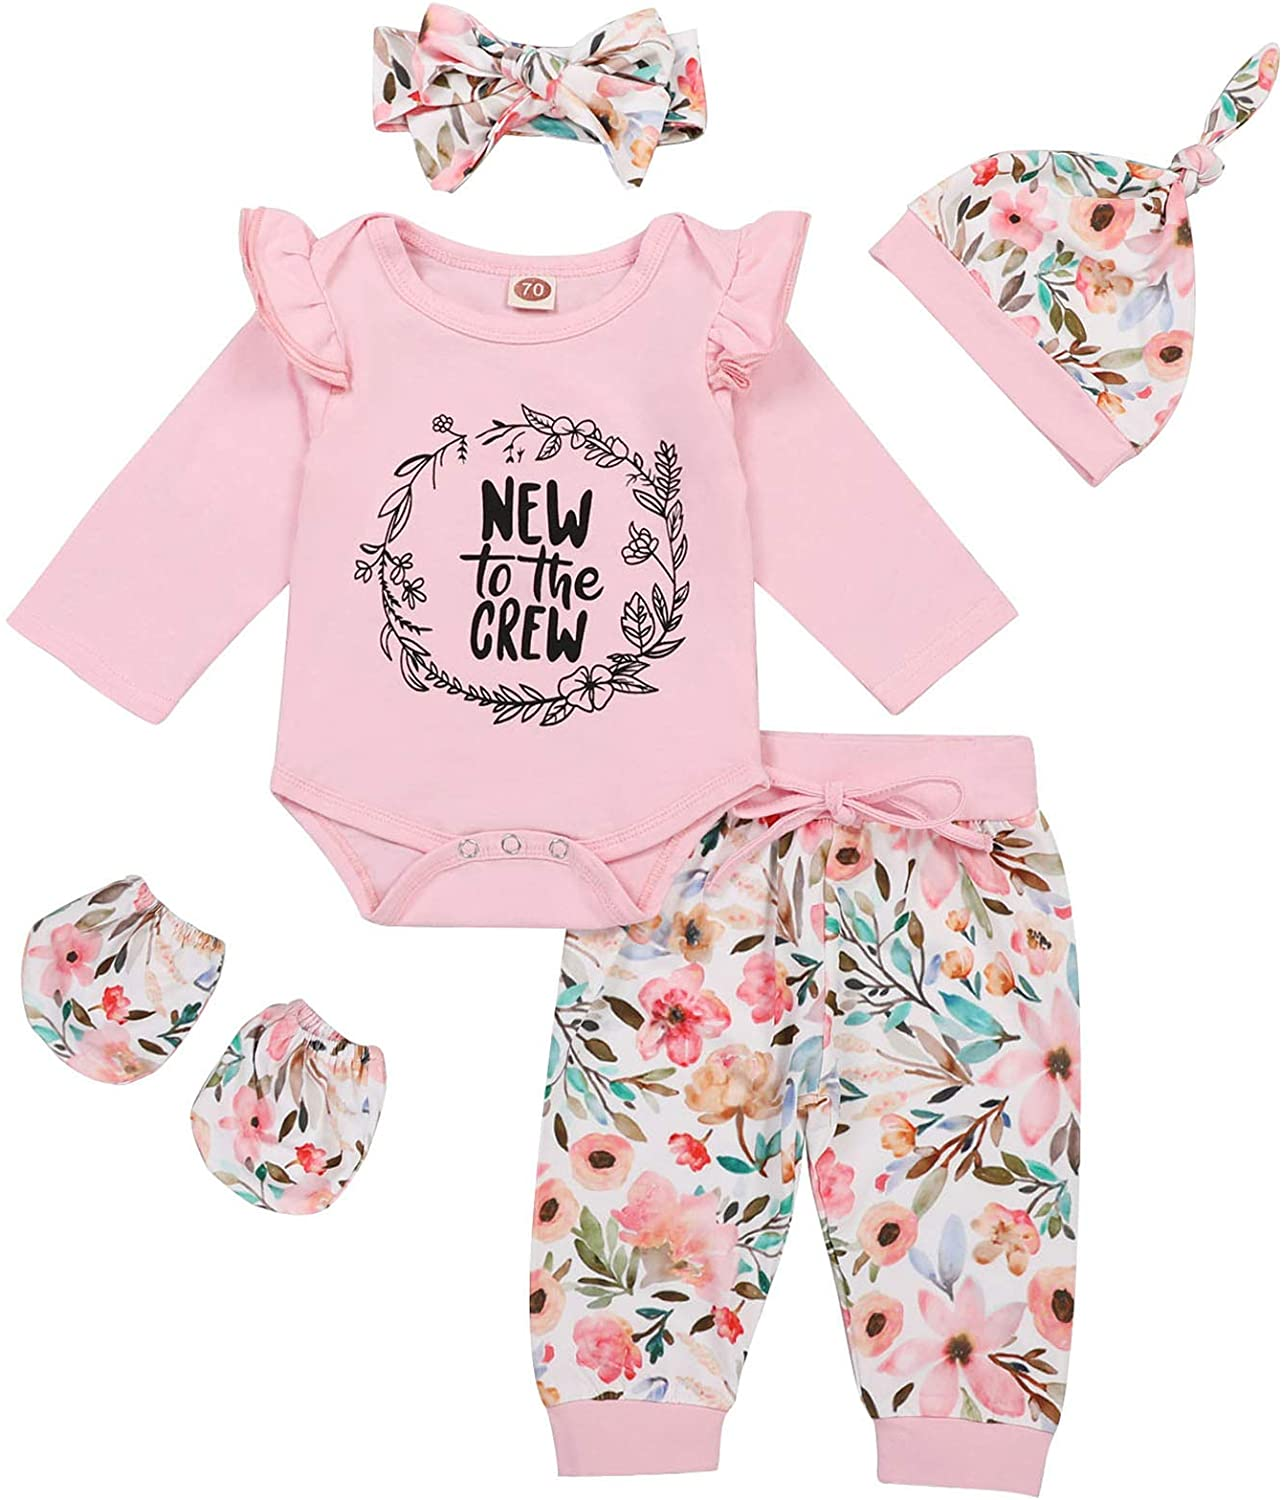 Newborn Baby Girl Outfits Daddy's Little Girl Letter Print Romper+Floral Pants+Hat+Headband+Gloves 5PCS Clothes Set